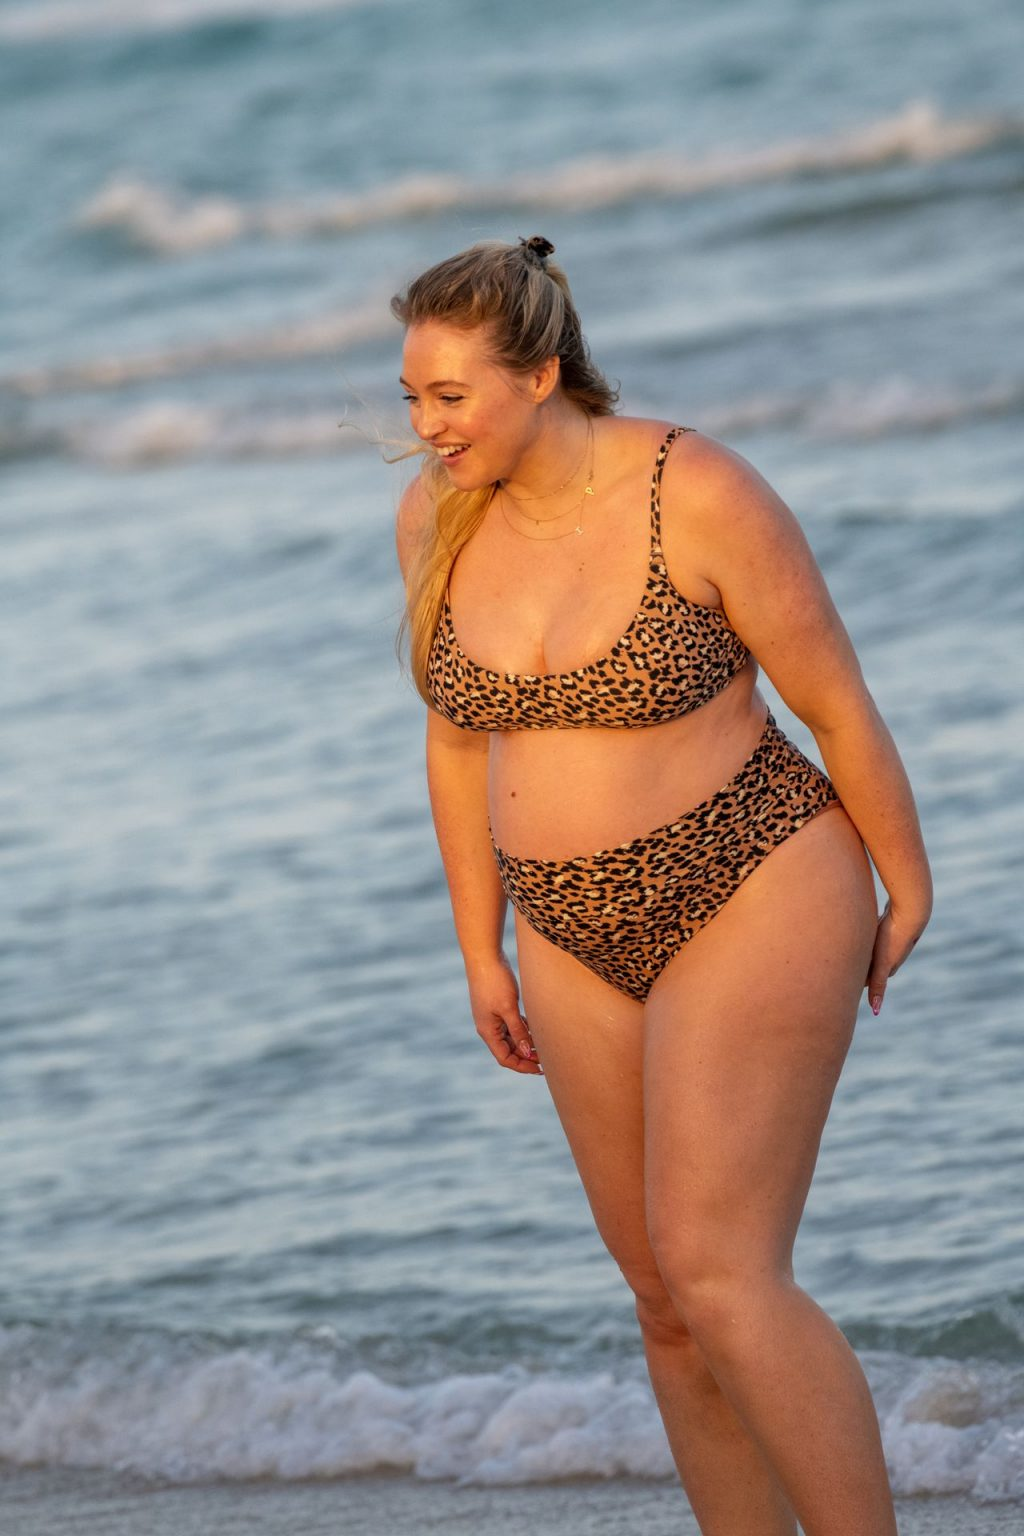 Iskra Lawrence Sexy The Fappening Blog 25 1024x1536 - Heavily Pregnant Model Iskra Lawrence Takes A Sunset Dip In Miami Beach (44 Photos)